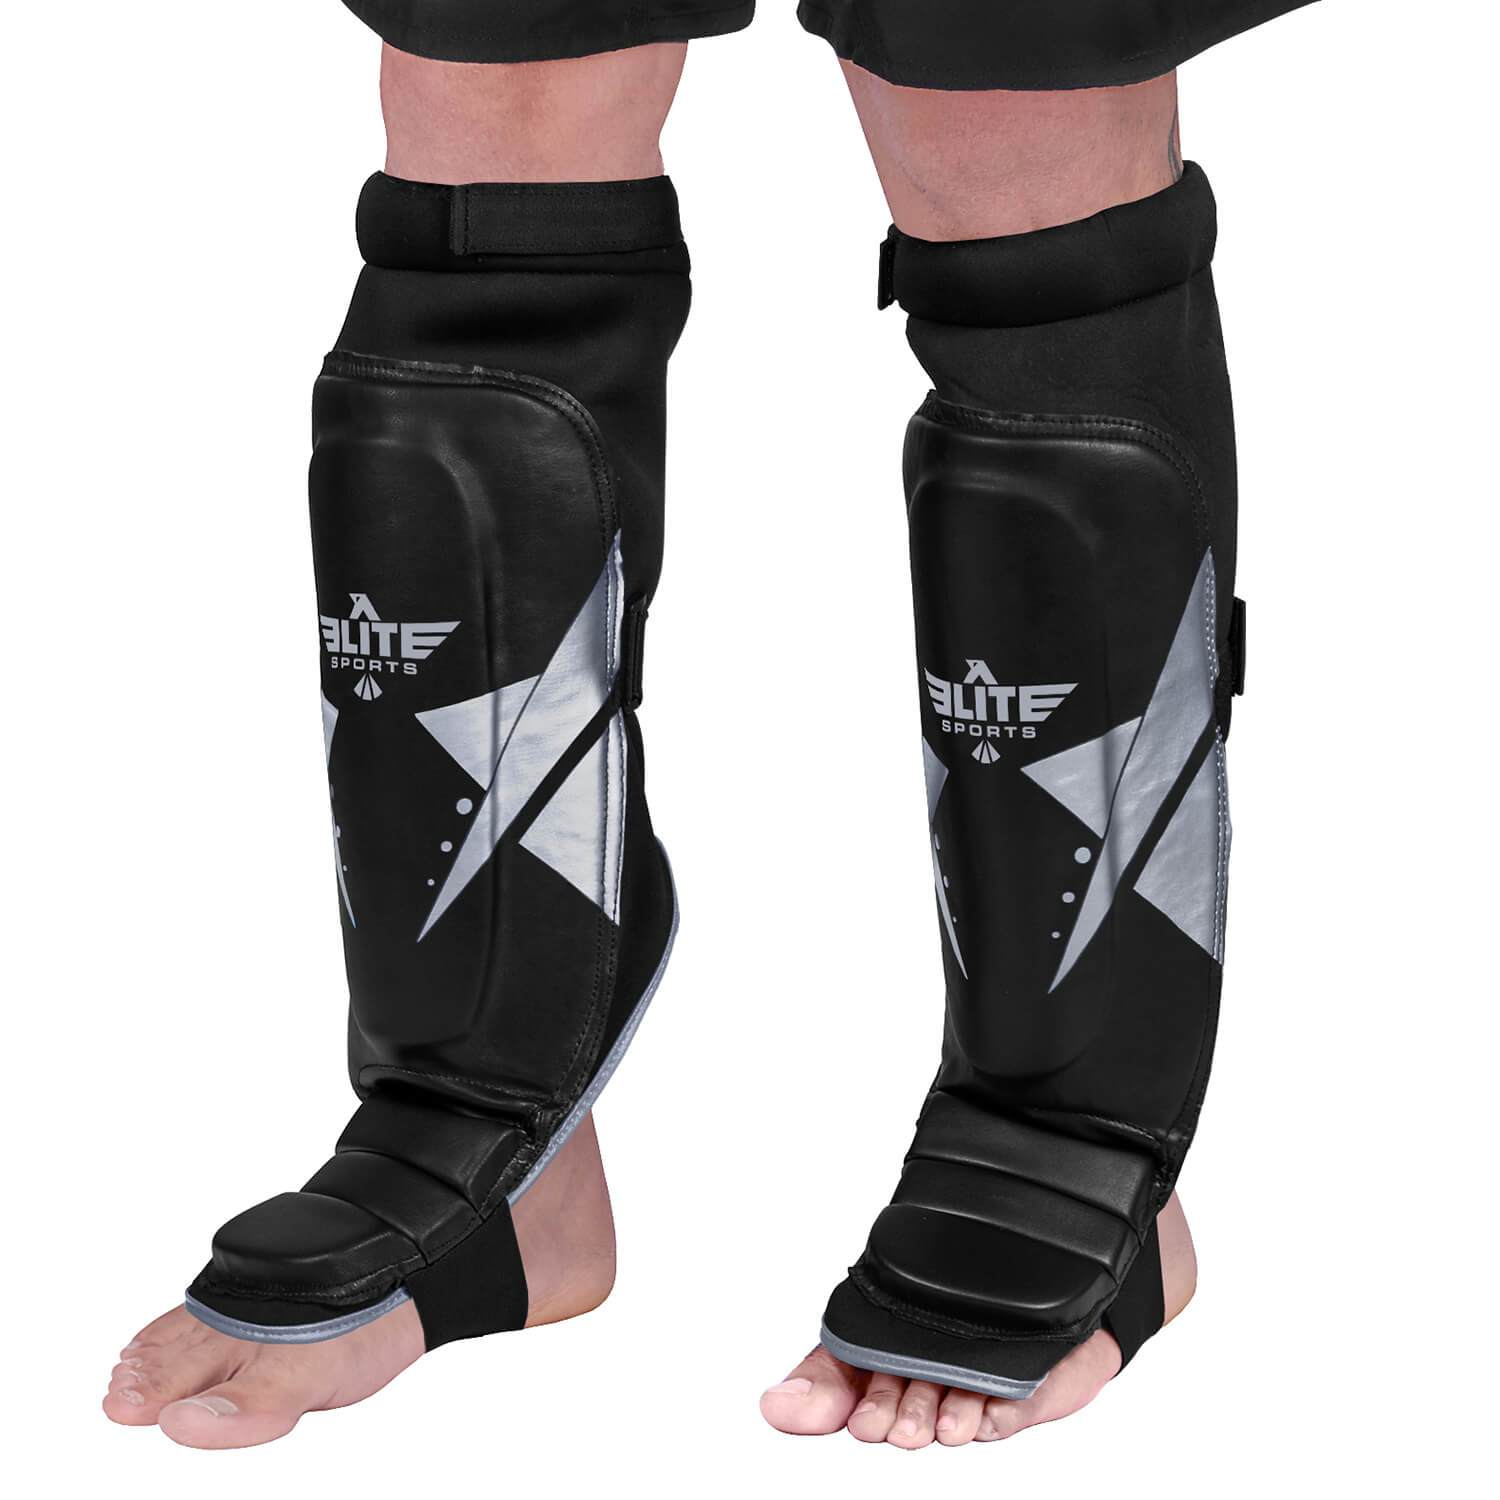 Elite Sports Star Series Black/Gray Muay Thai Shin Guards